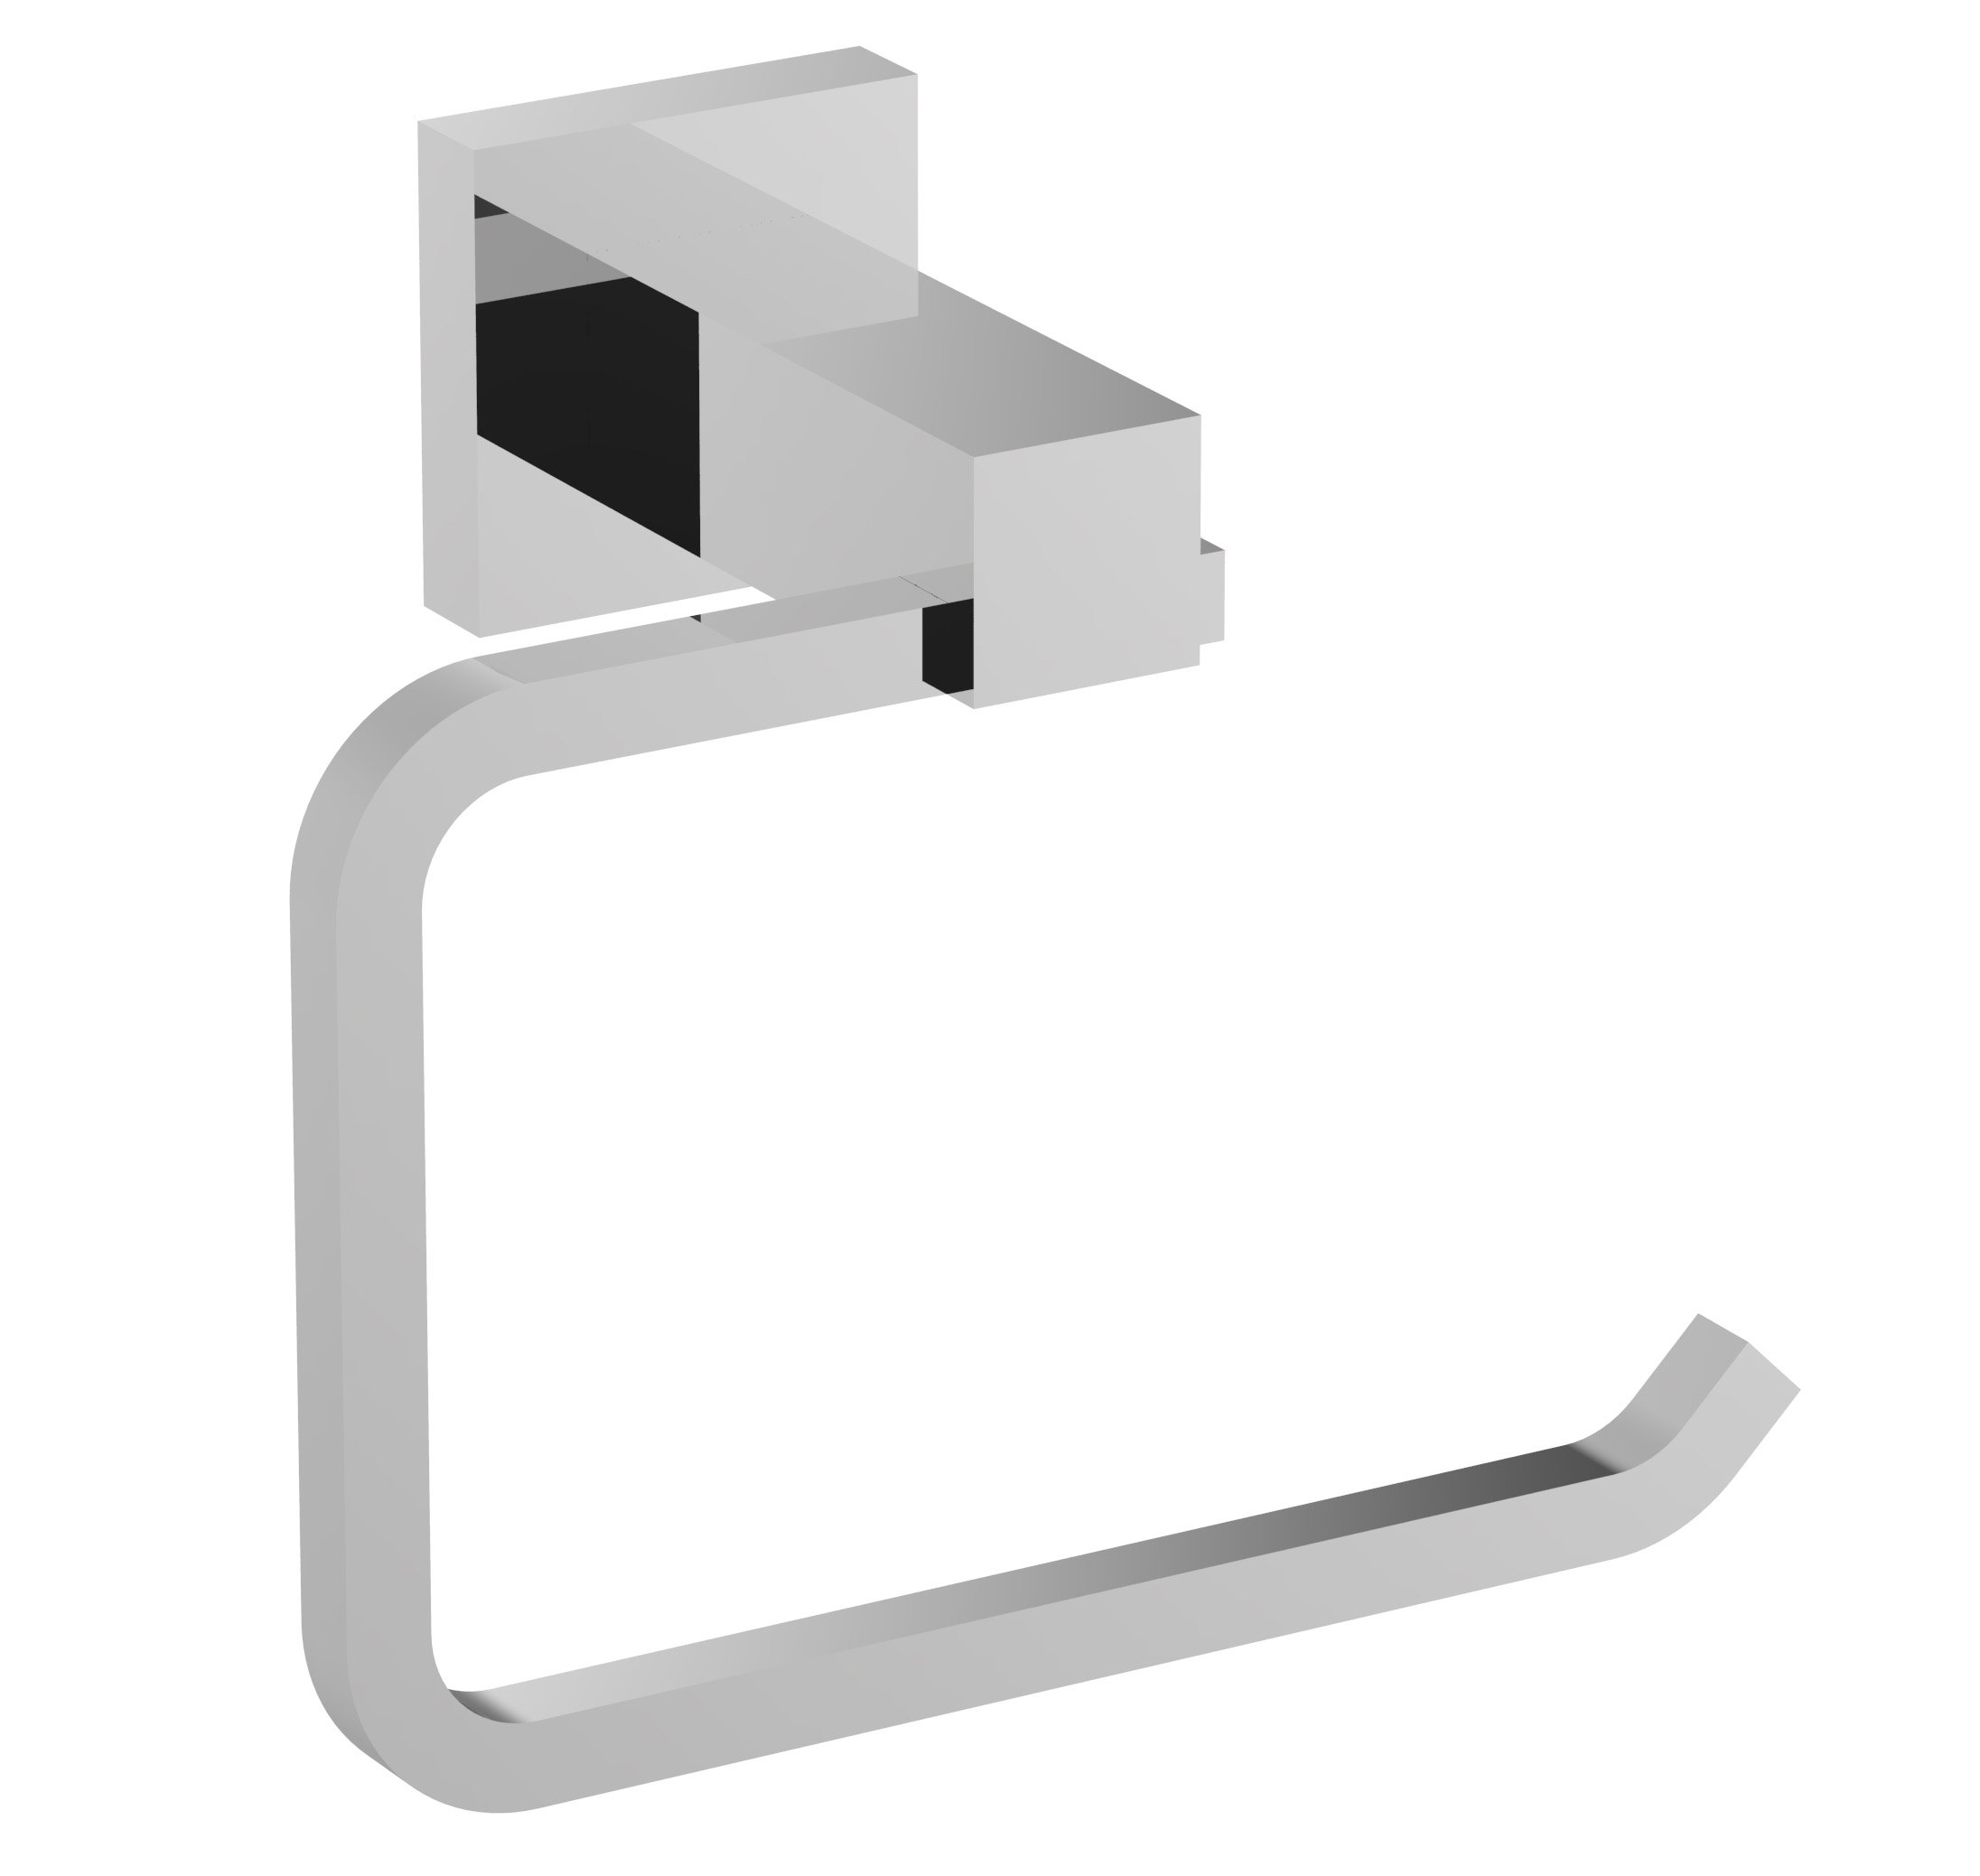 Eviva EVAC60CH Square Holdy Toilet Paper Or Towel Holder Bathroom Accessories Combination, Chrome